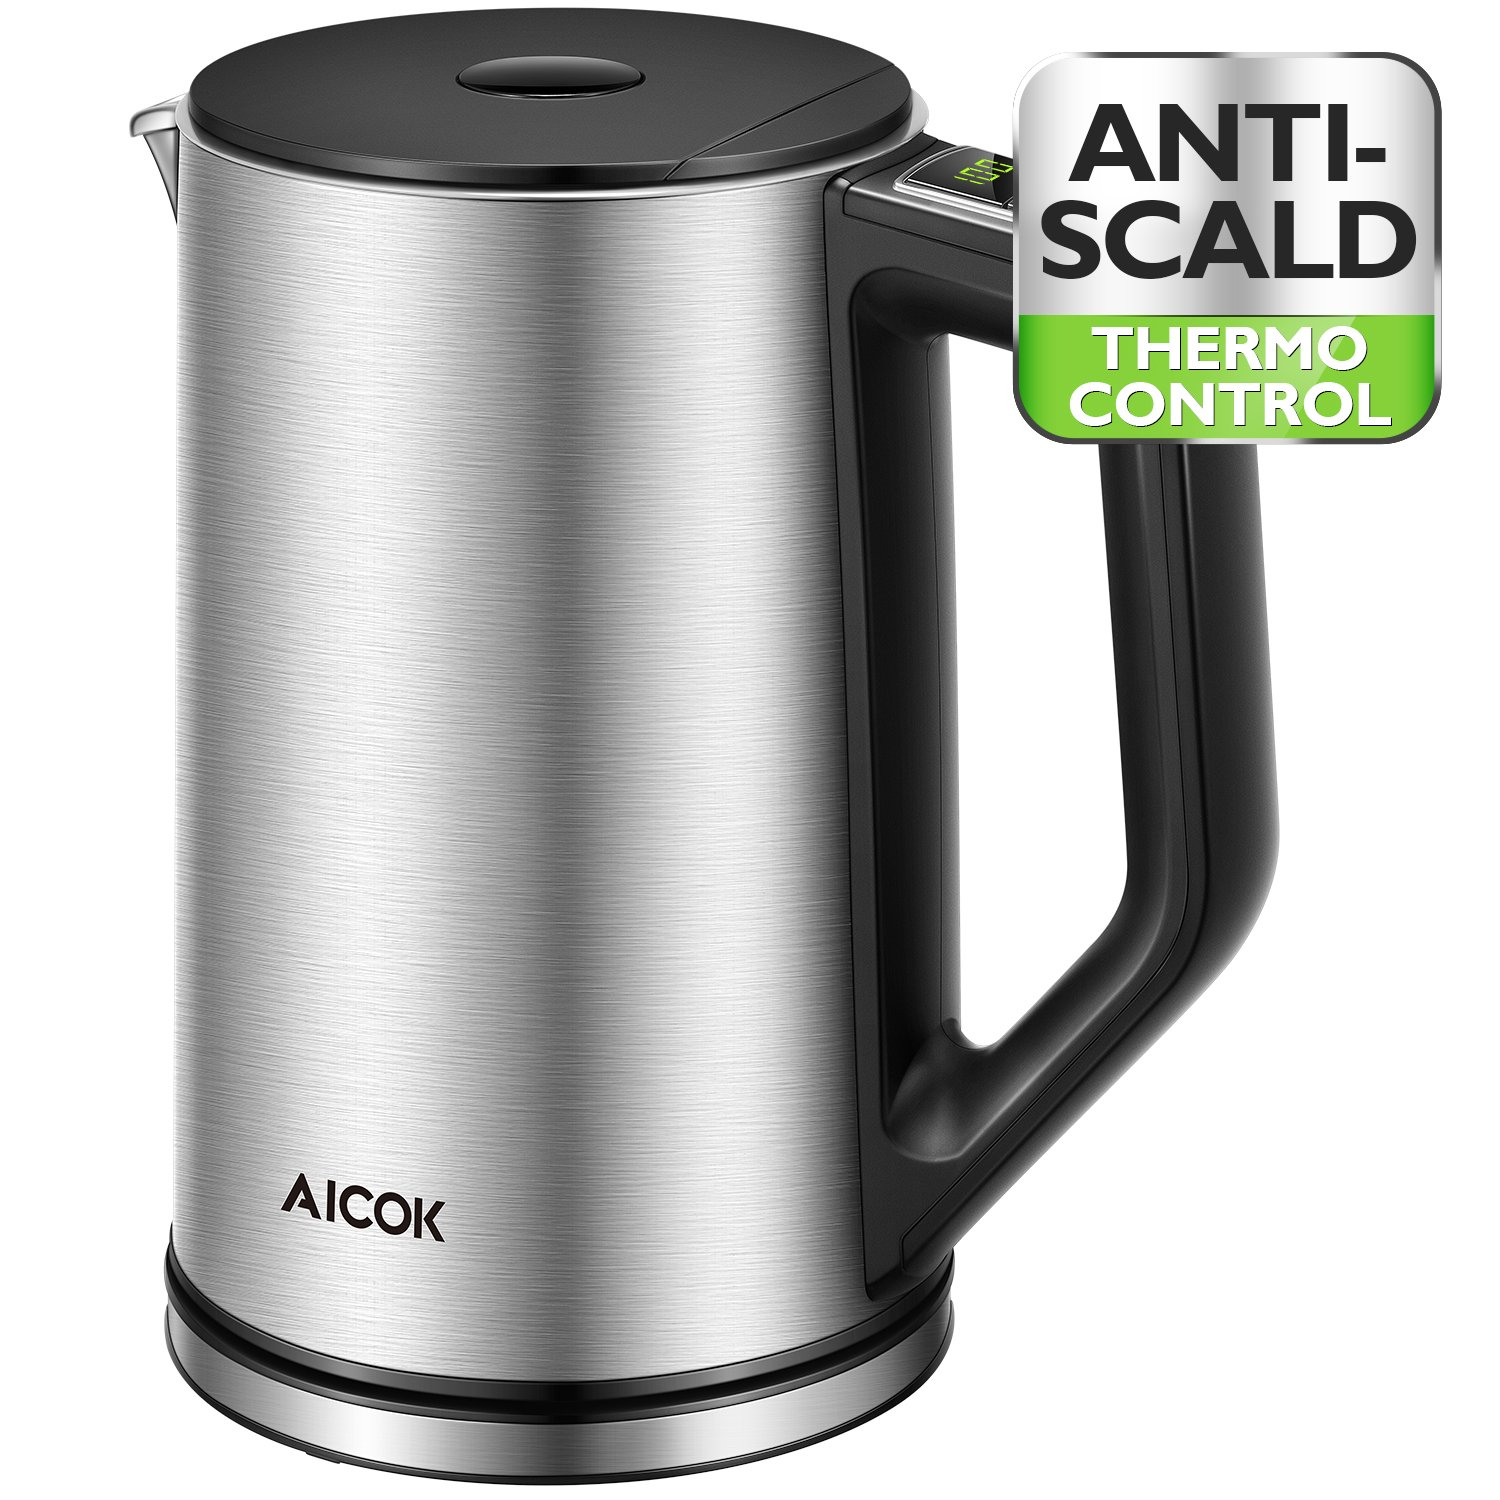 Aicok Electric Kettle Temperature Control, Double Wall Cool Touch Stainless Steel Water Kettle with LED Display from 90 ℉-212℉  BPA-Free   Strix Control   Keep Warm   Quick Boil   (1.5 L, 1500 W)